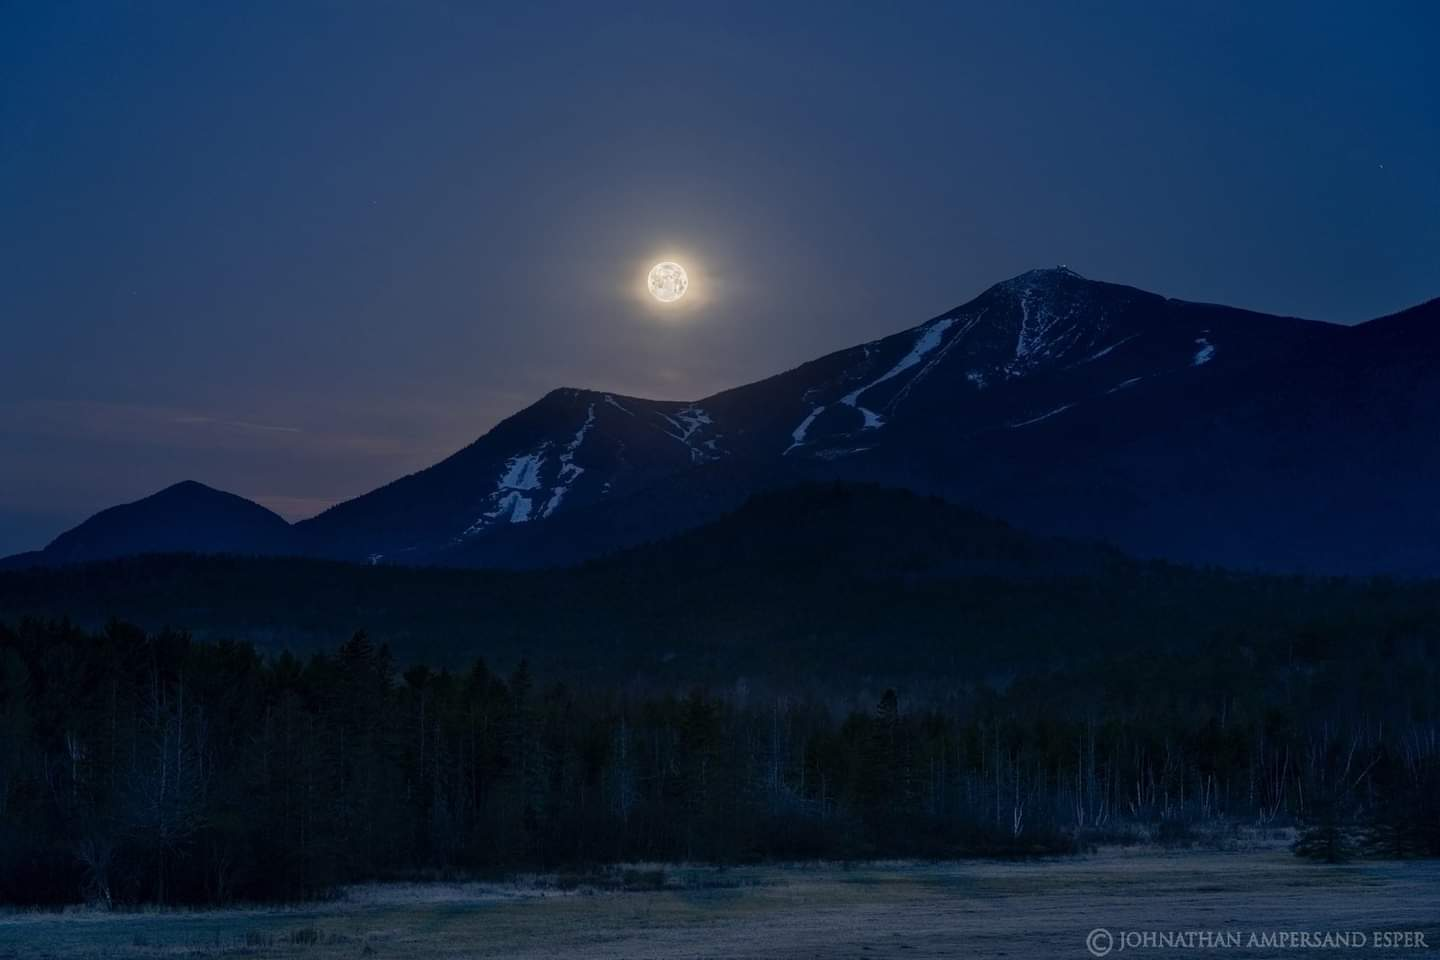 Moon, full moon, Whiteface Mountain, Wilmington, night,spring,2020, Whiteface Mt,